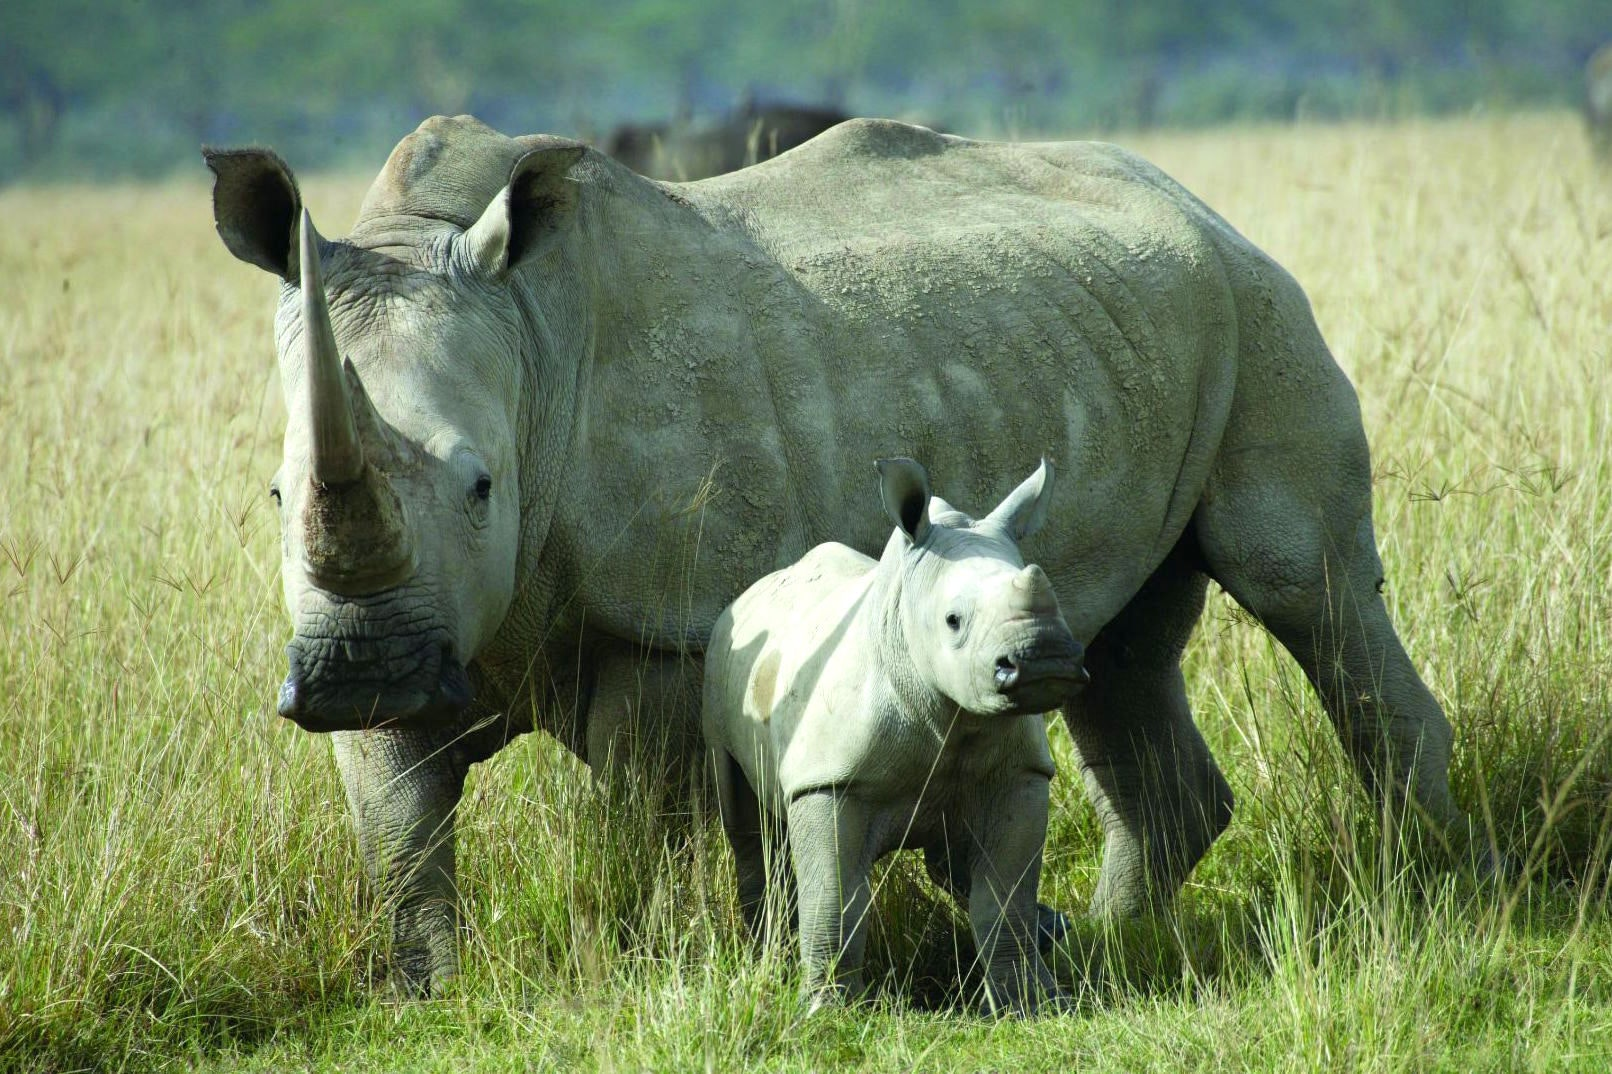 The case for introducing rhinos to Australia